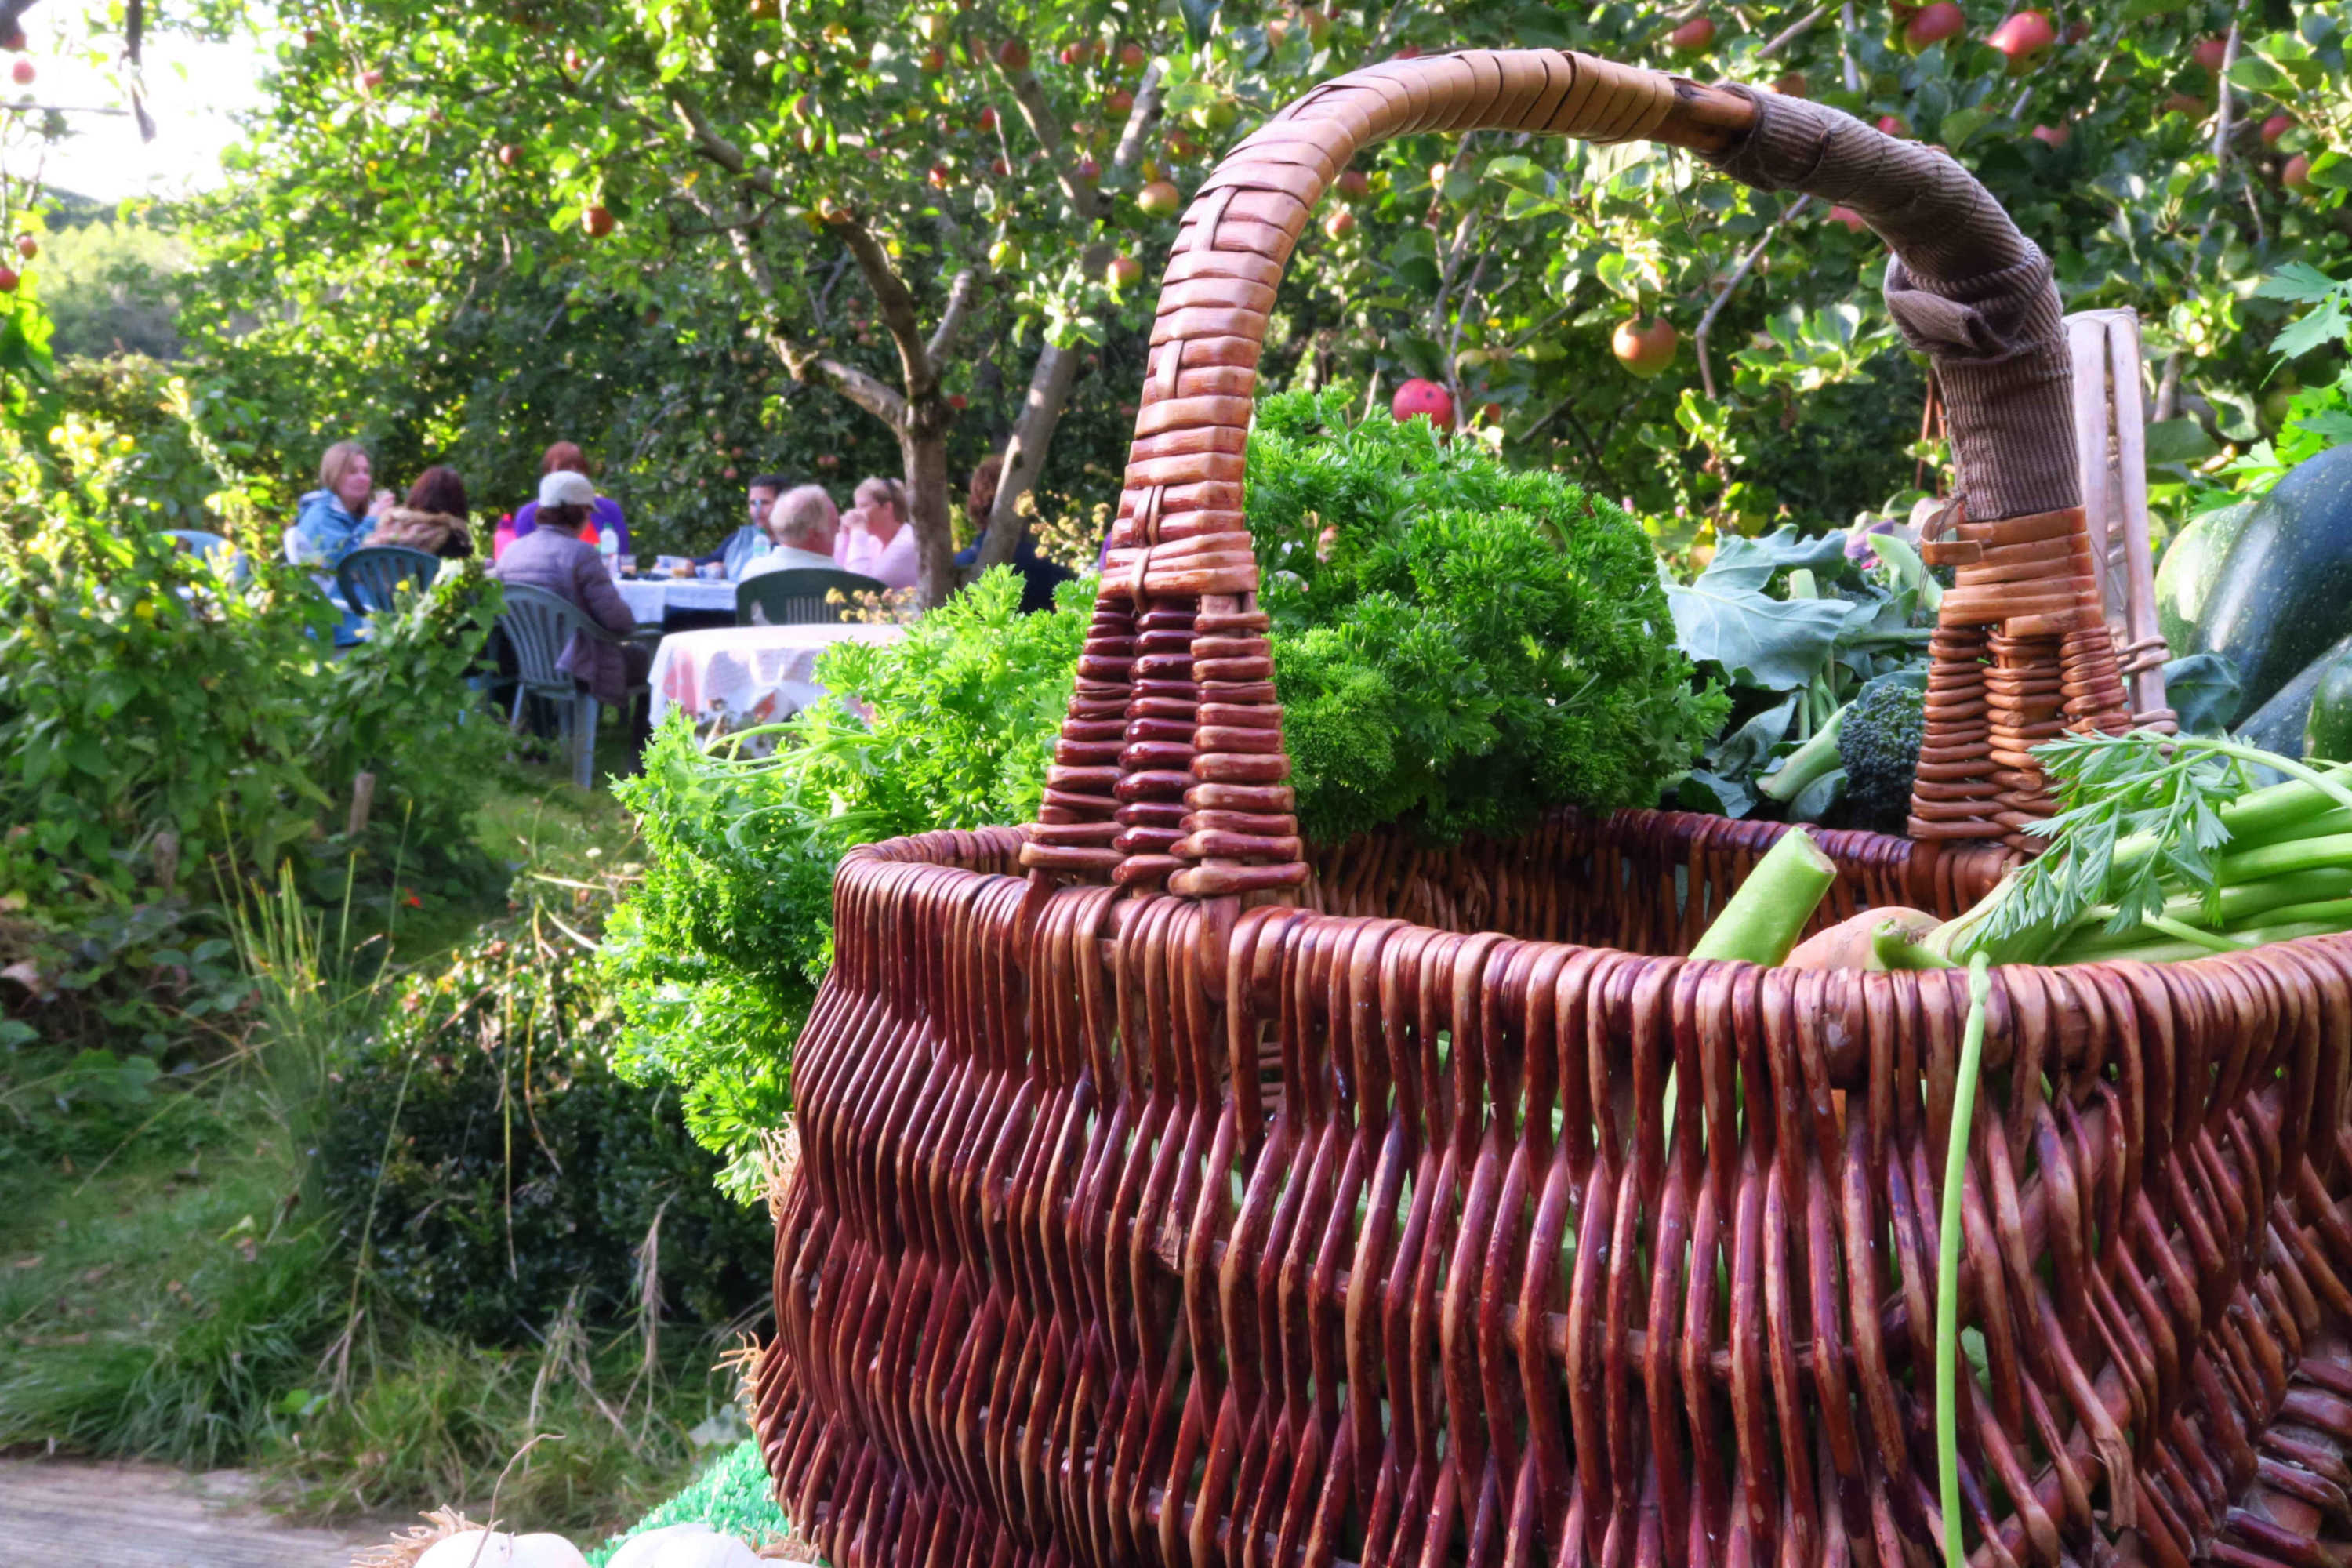 Basket and group in the orchard after a farm walk